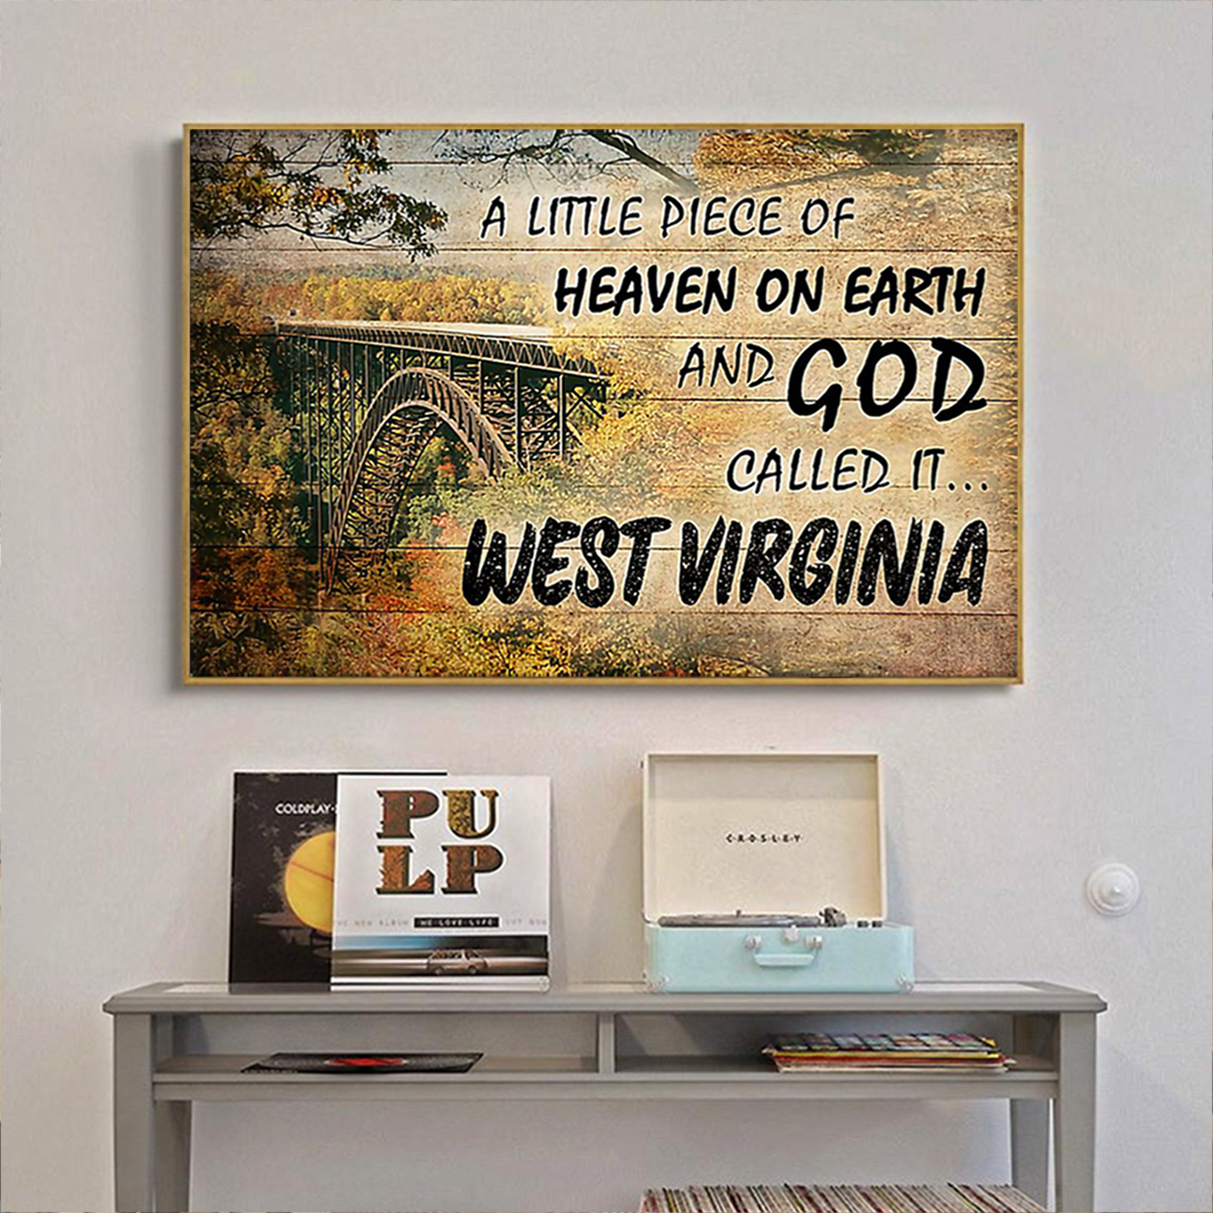 A little piece of heaven on earth and god called it west virginia poster A2